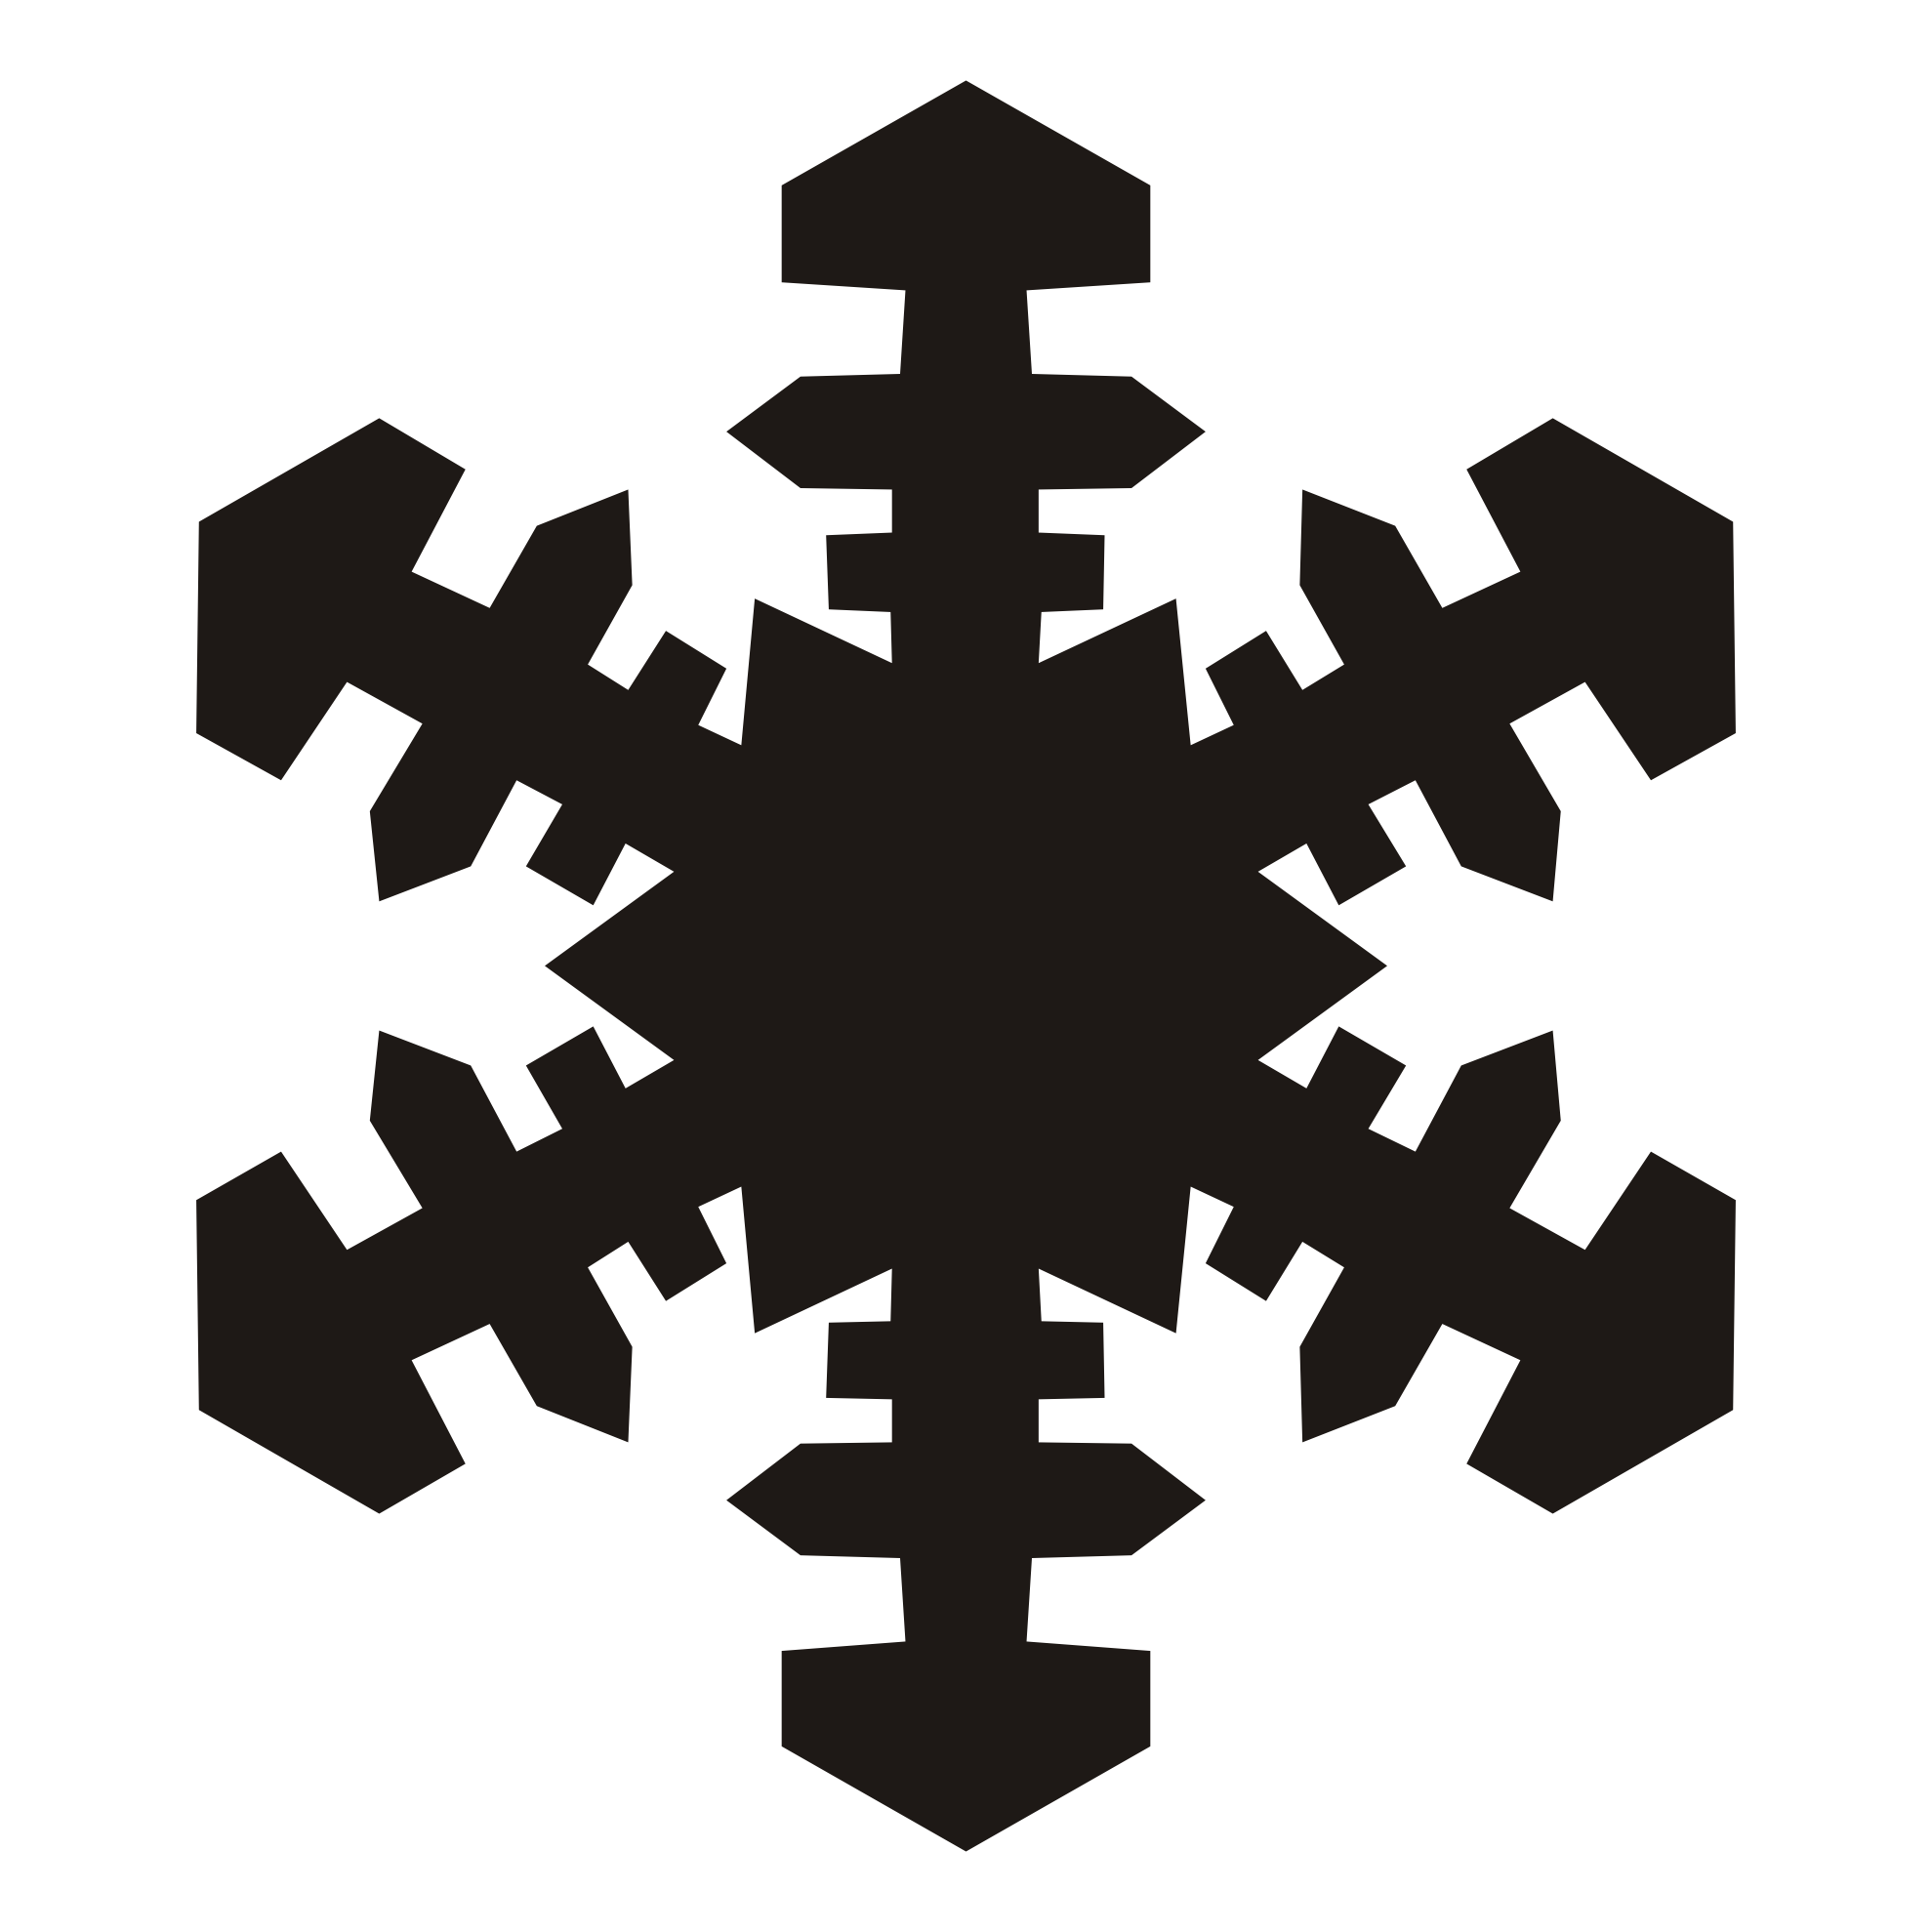 Snowflake clipart solid white picture stock Christmas Silhouette Clipart at GetDrawings.com | Free for personal ... picture stock